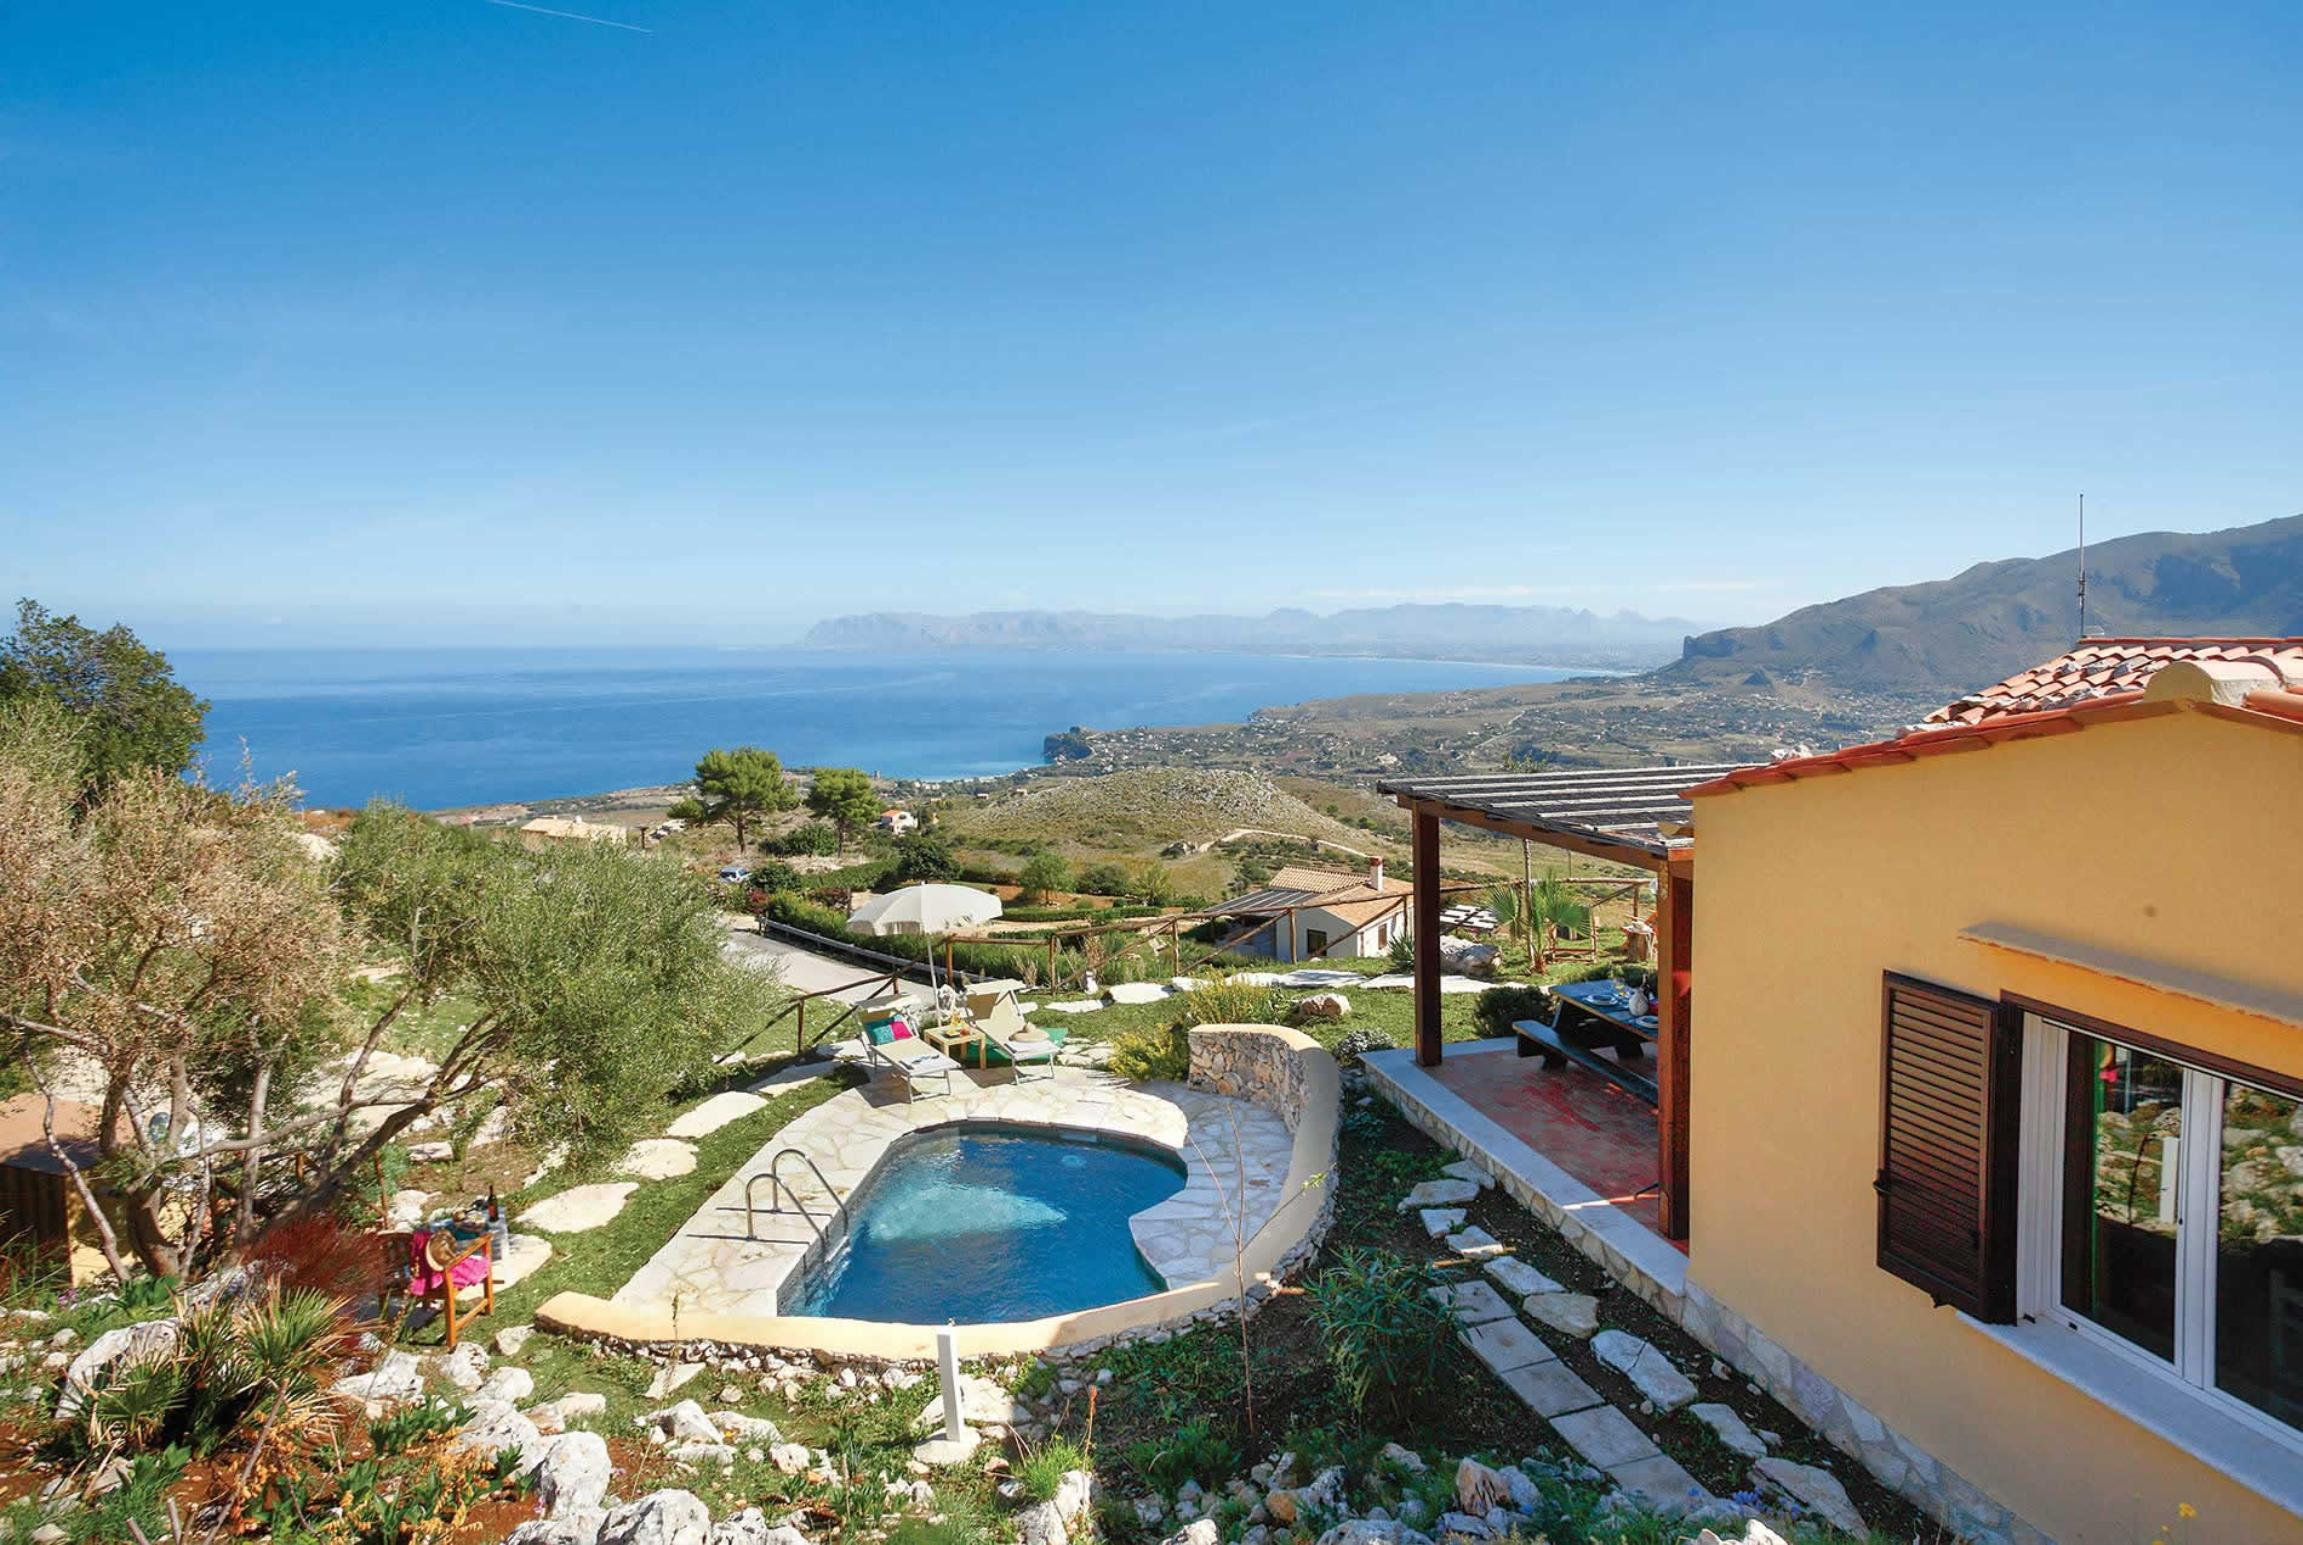 Read more about Conchiglia villa